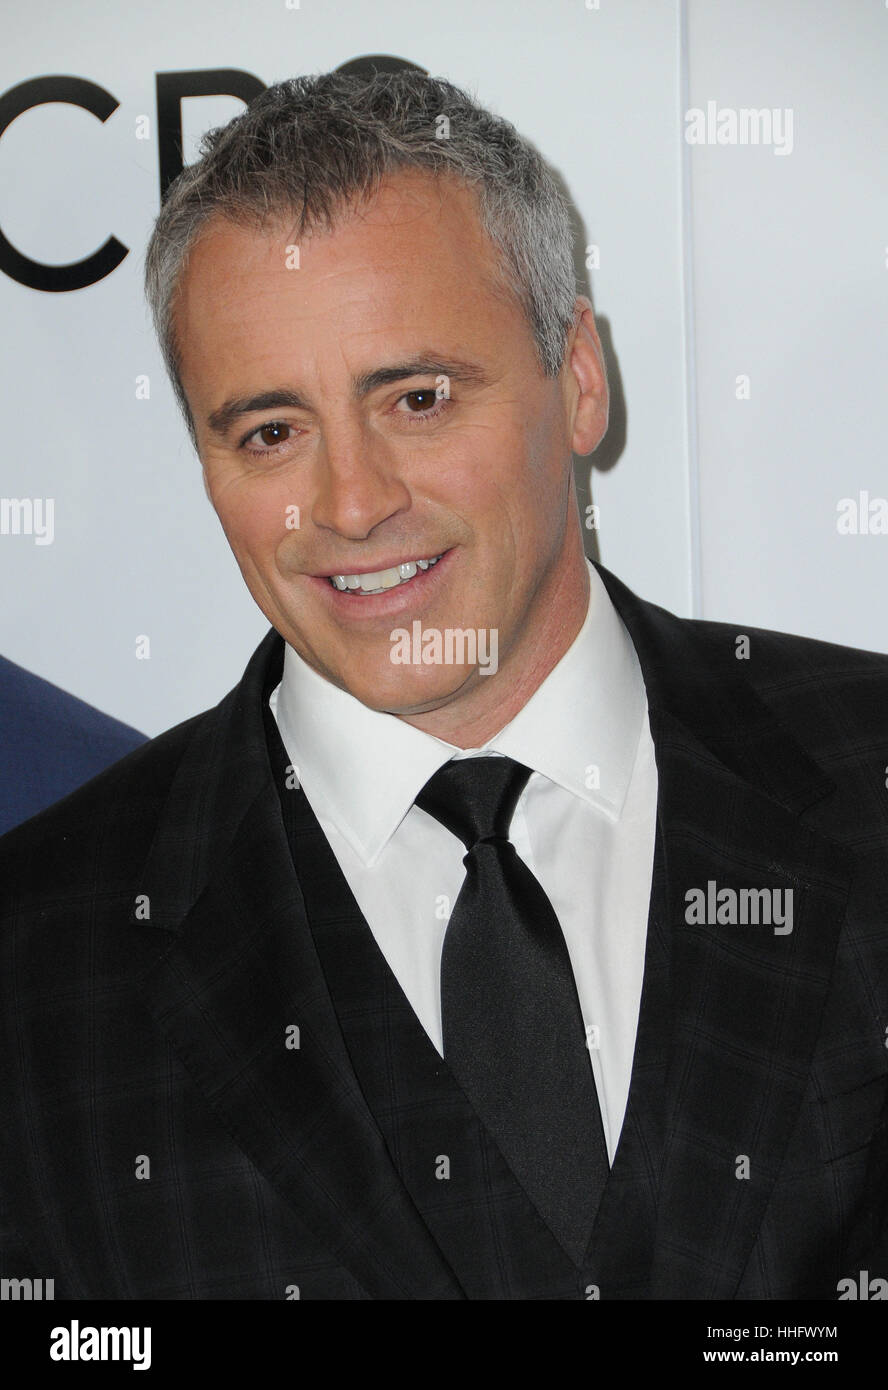 Los Angeles, CA, USA. 18th Jan, 2017. 18 January 2017 - Los Angeles, California - Matt LeBlanc. 2017 People's - Stock Image